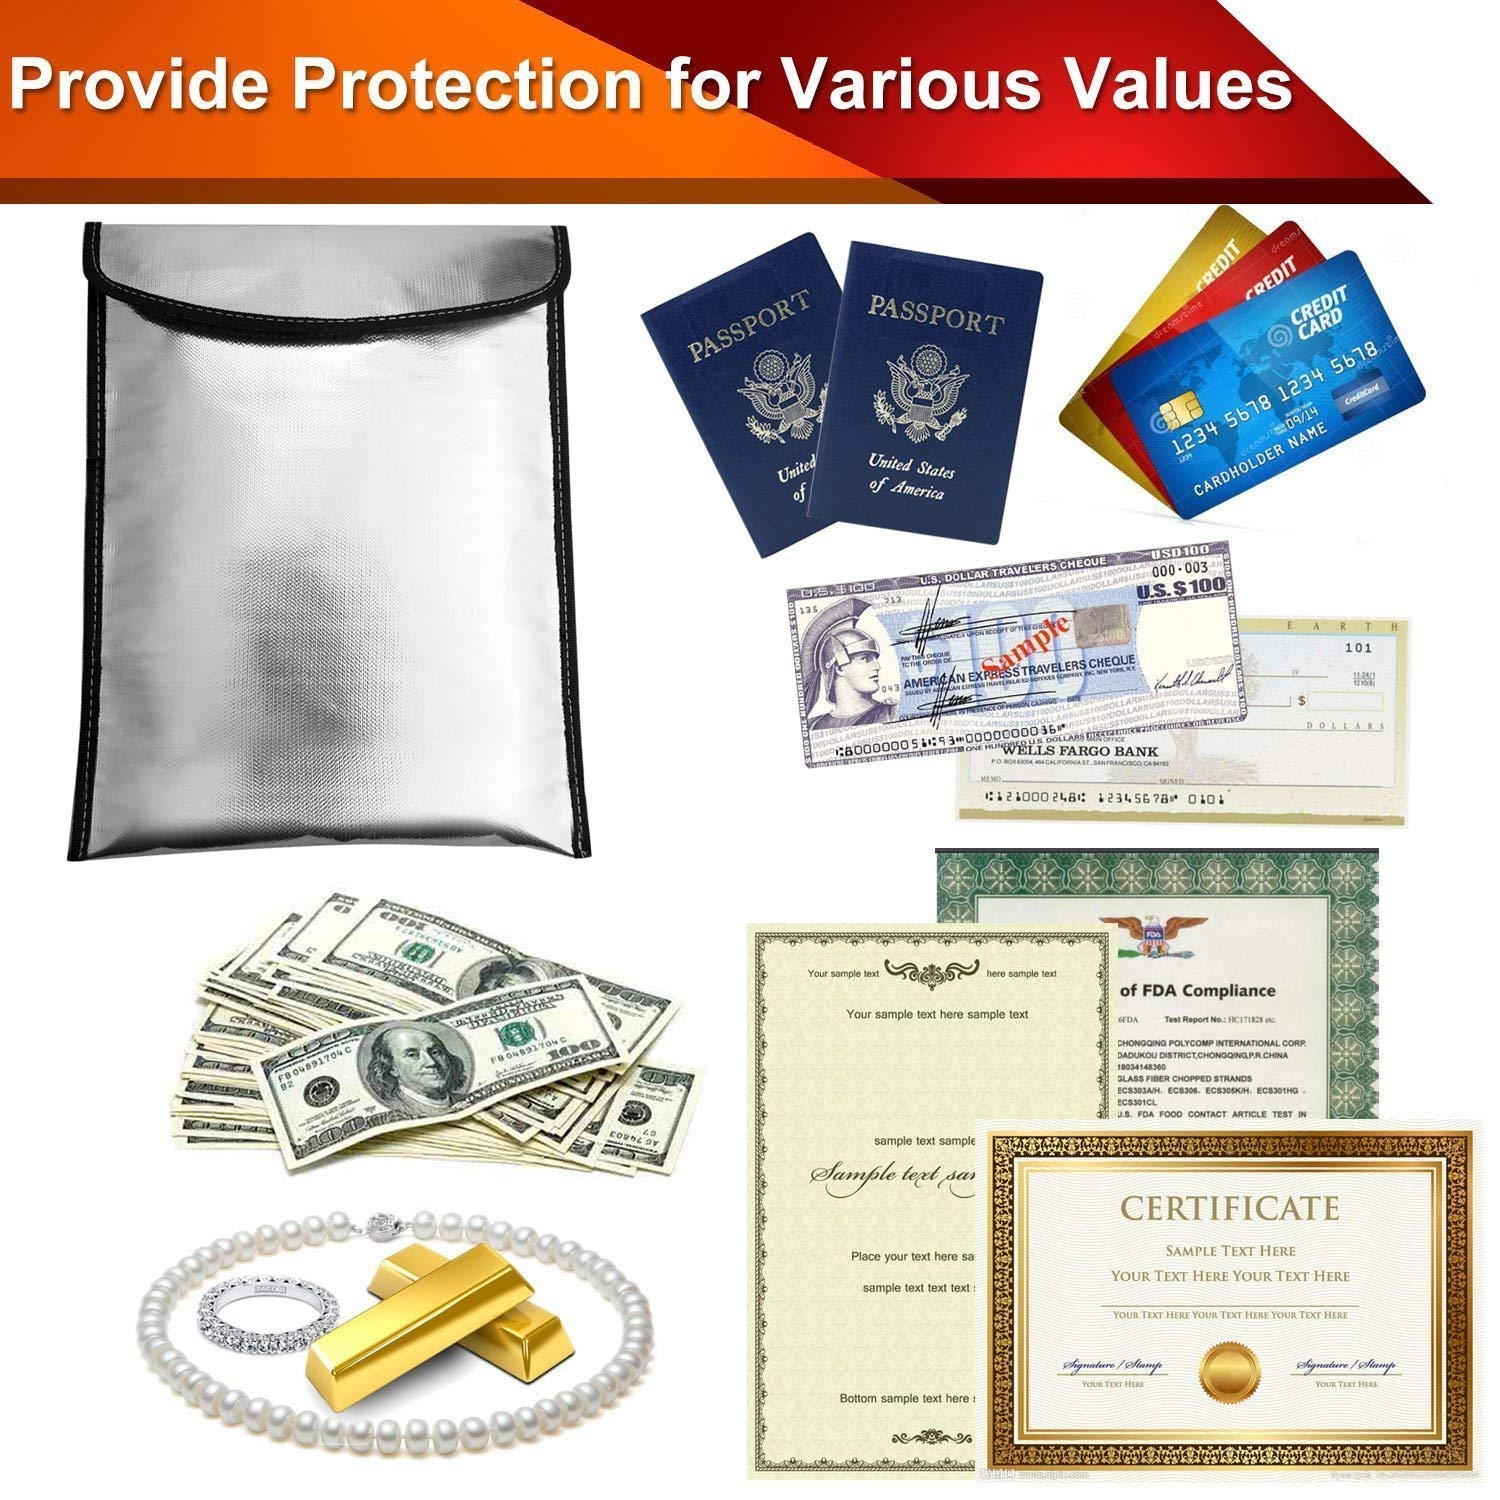 Valuables Safe Storage Bag Fireproof Document Bag 13.4 x 10.2 Fire /& Water Resistant Security Pouch with Velcro Closure